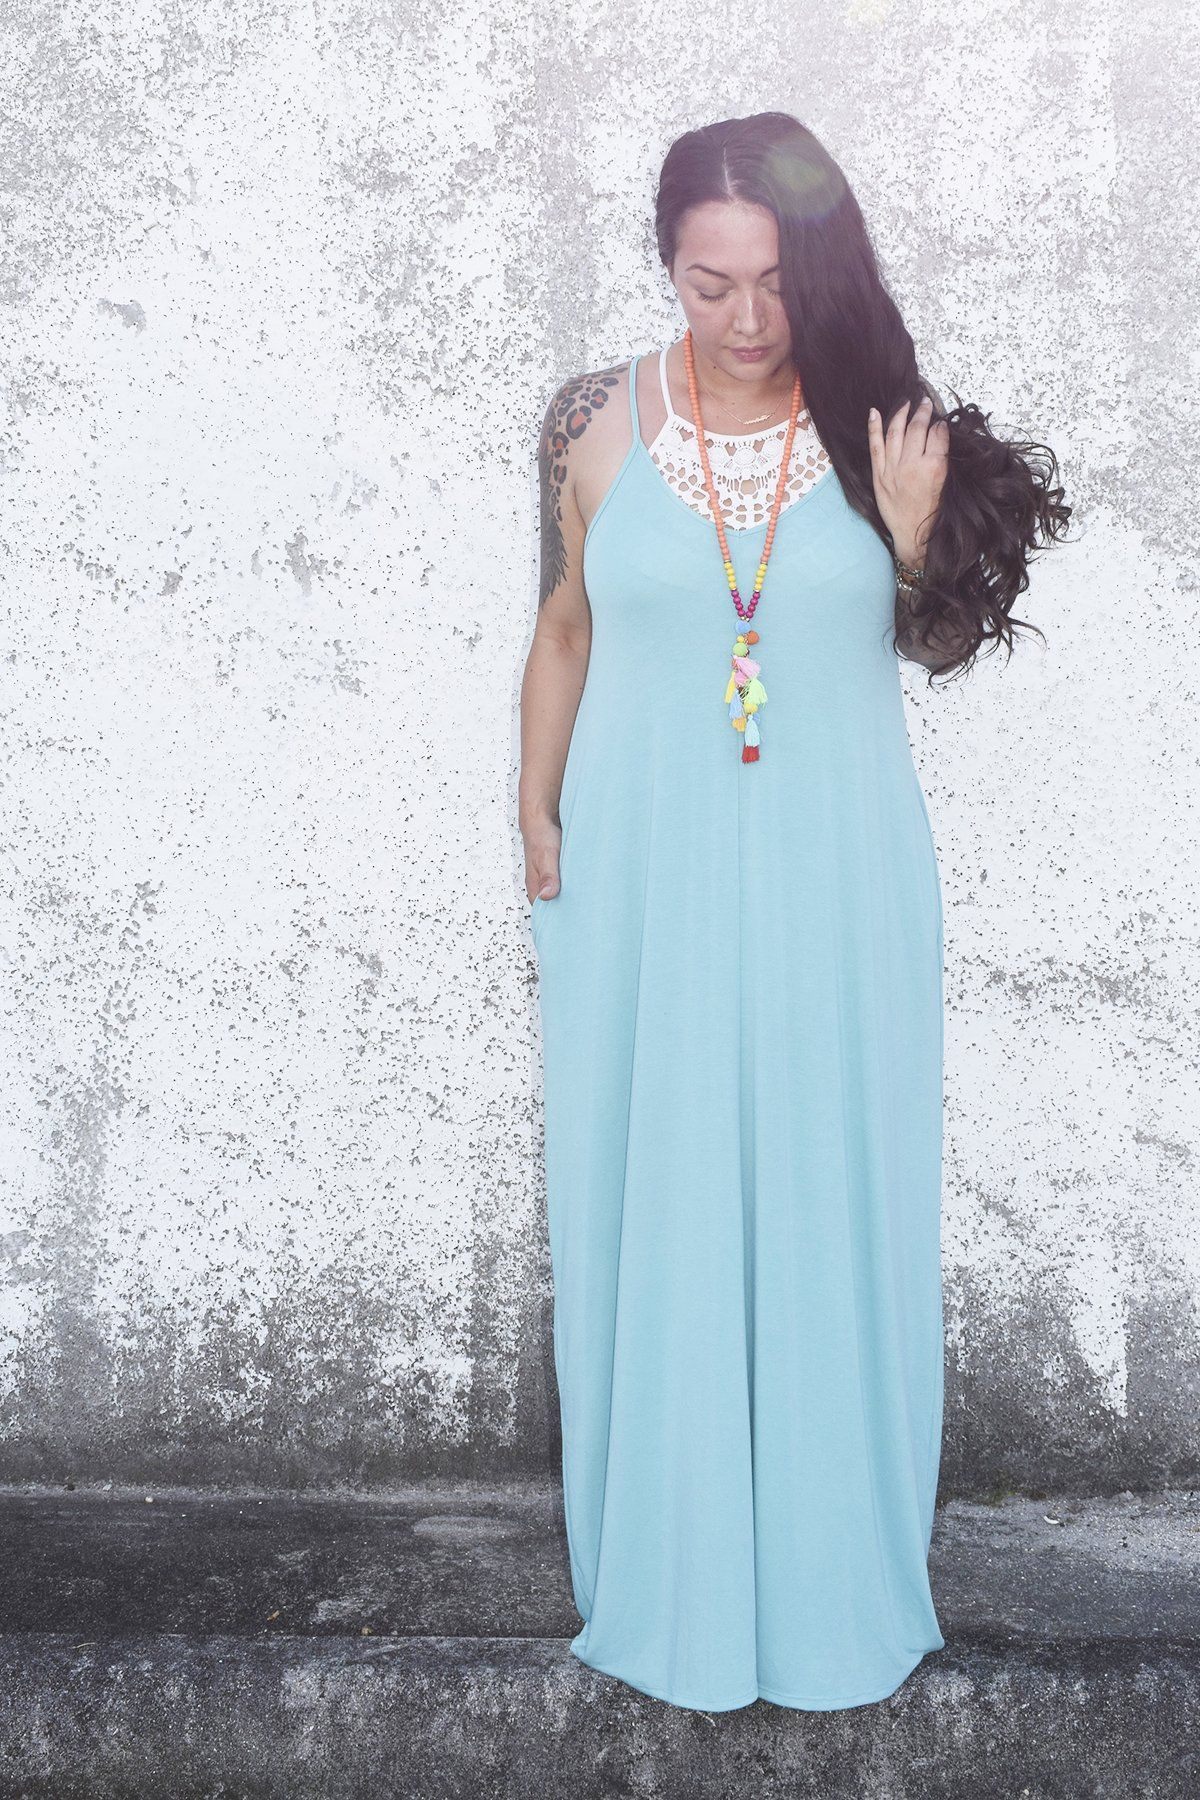 92a4d124b0 Our maxi dresses are the perfect basic to have in your closet! Create the  perfect bohemian look when paired with our crochet halter bralettes and  colorful ...